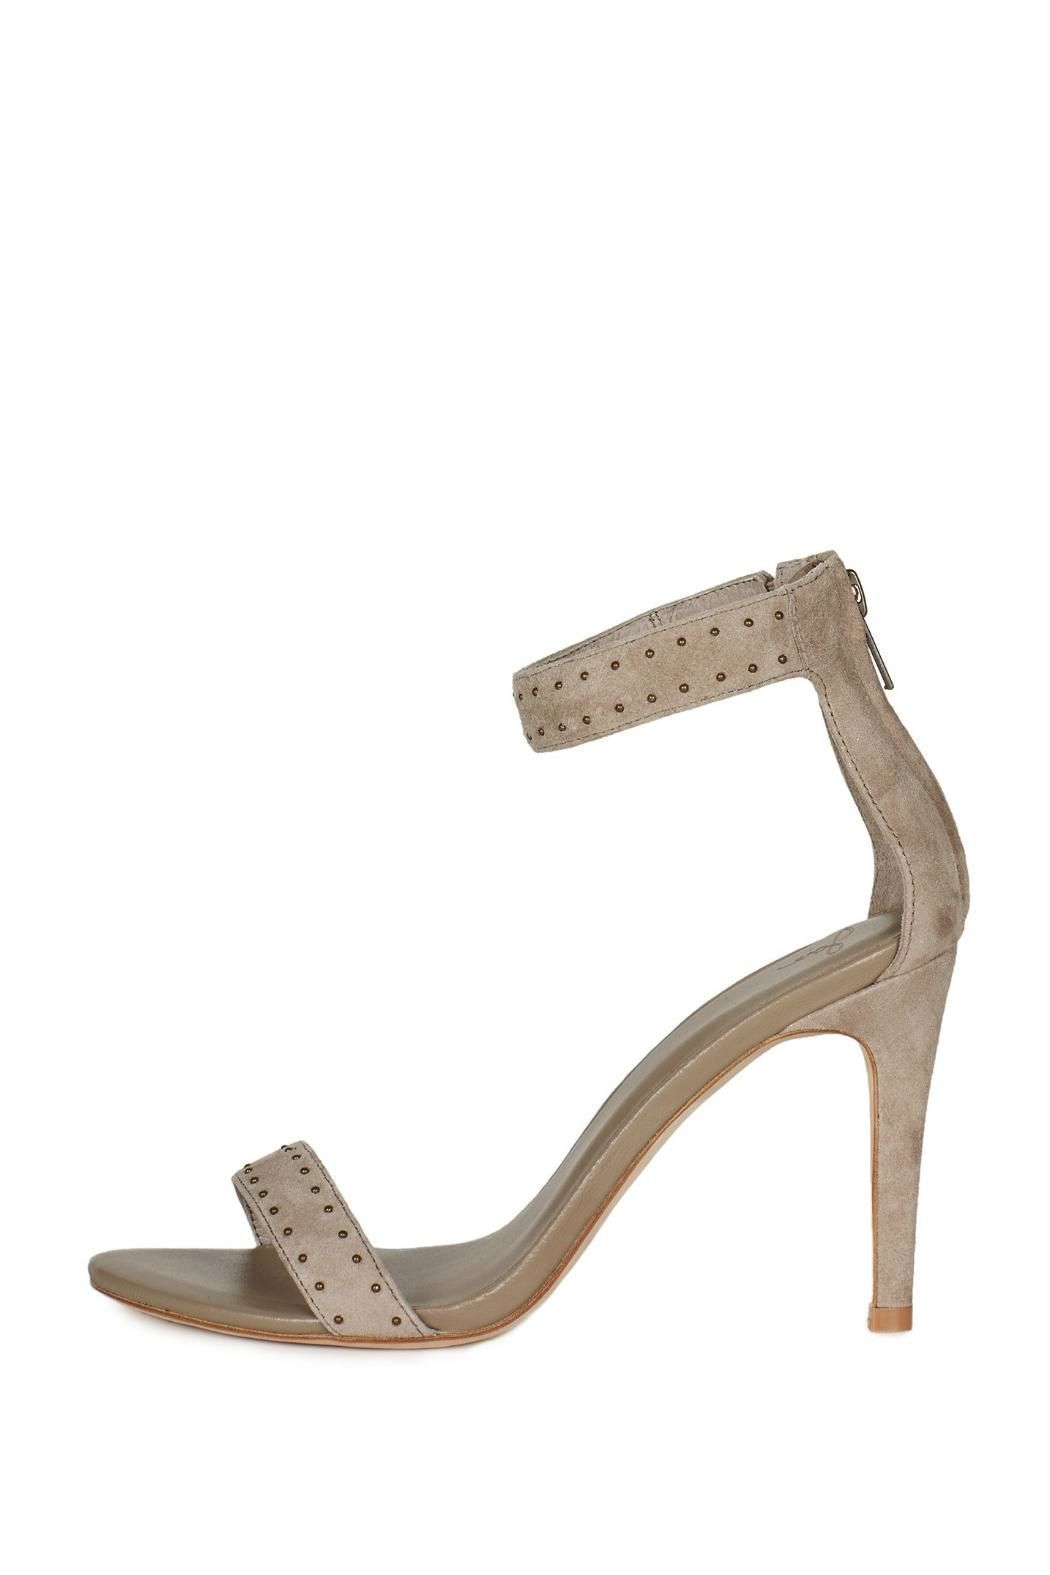 a03b2c6e79bb Classy high heels with an open toe strap